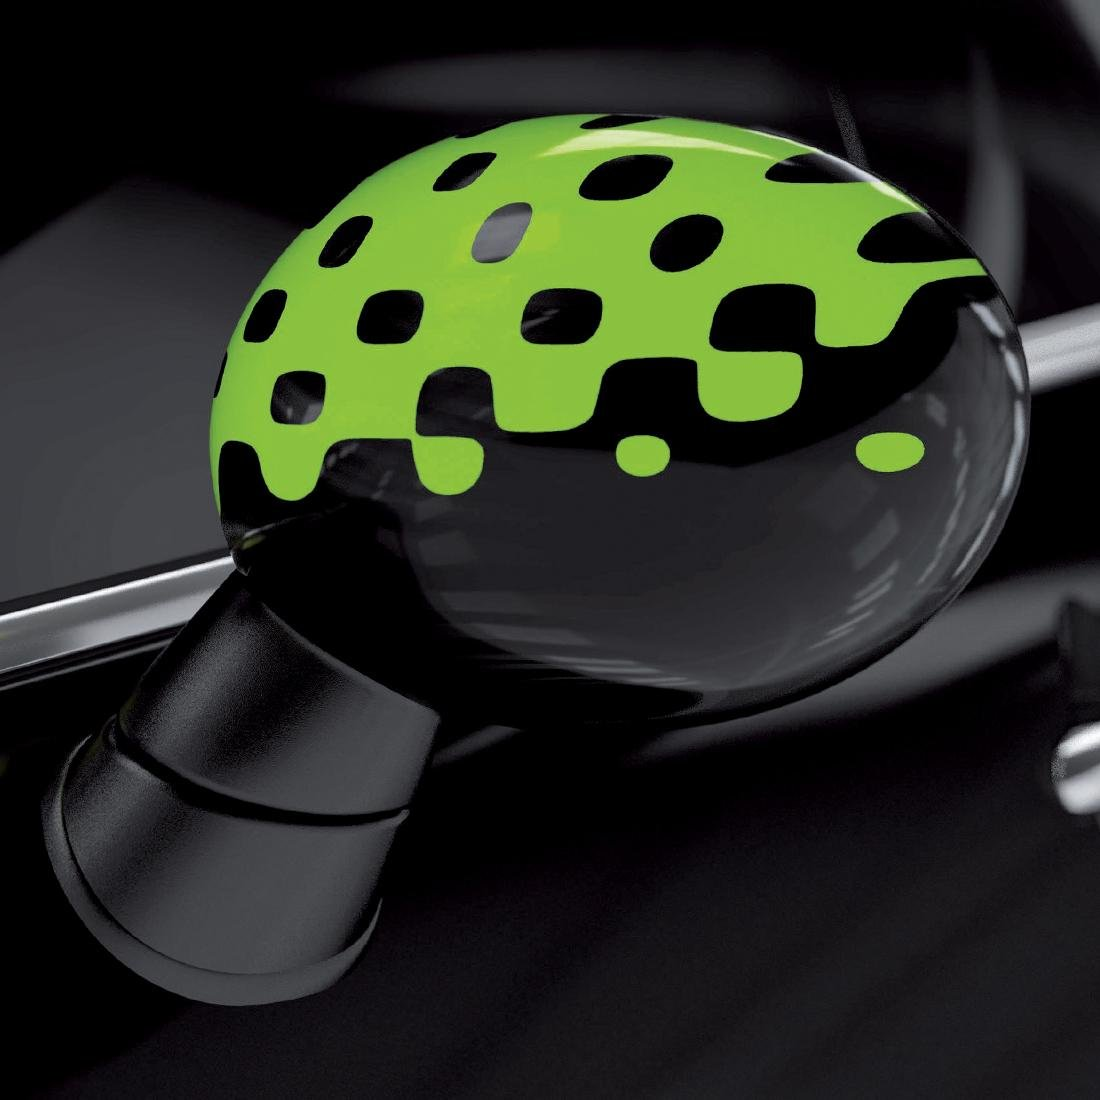 MINI F56 2014 Exterior Mirror Caps Vivid Green Covers